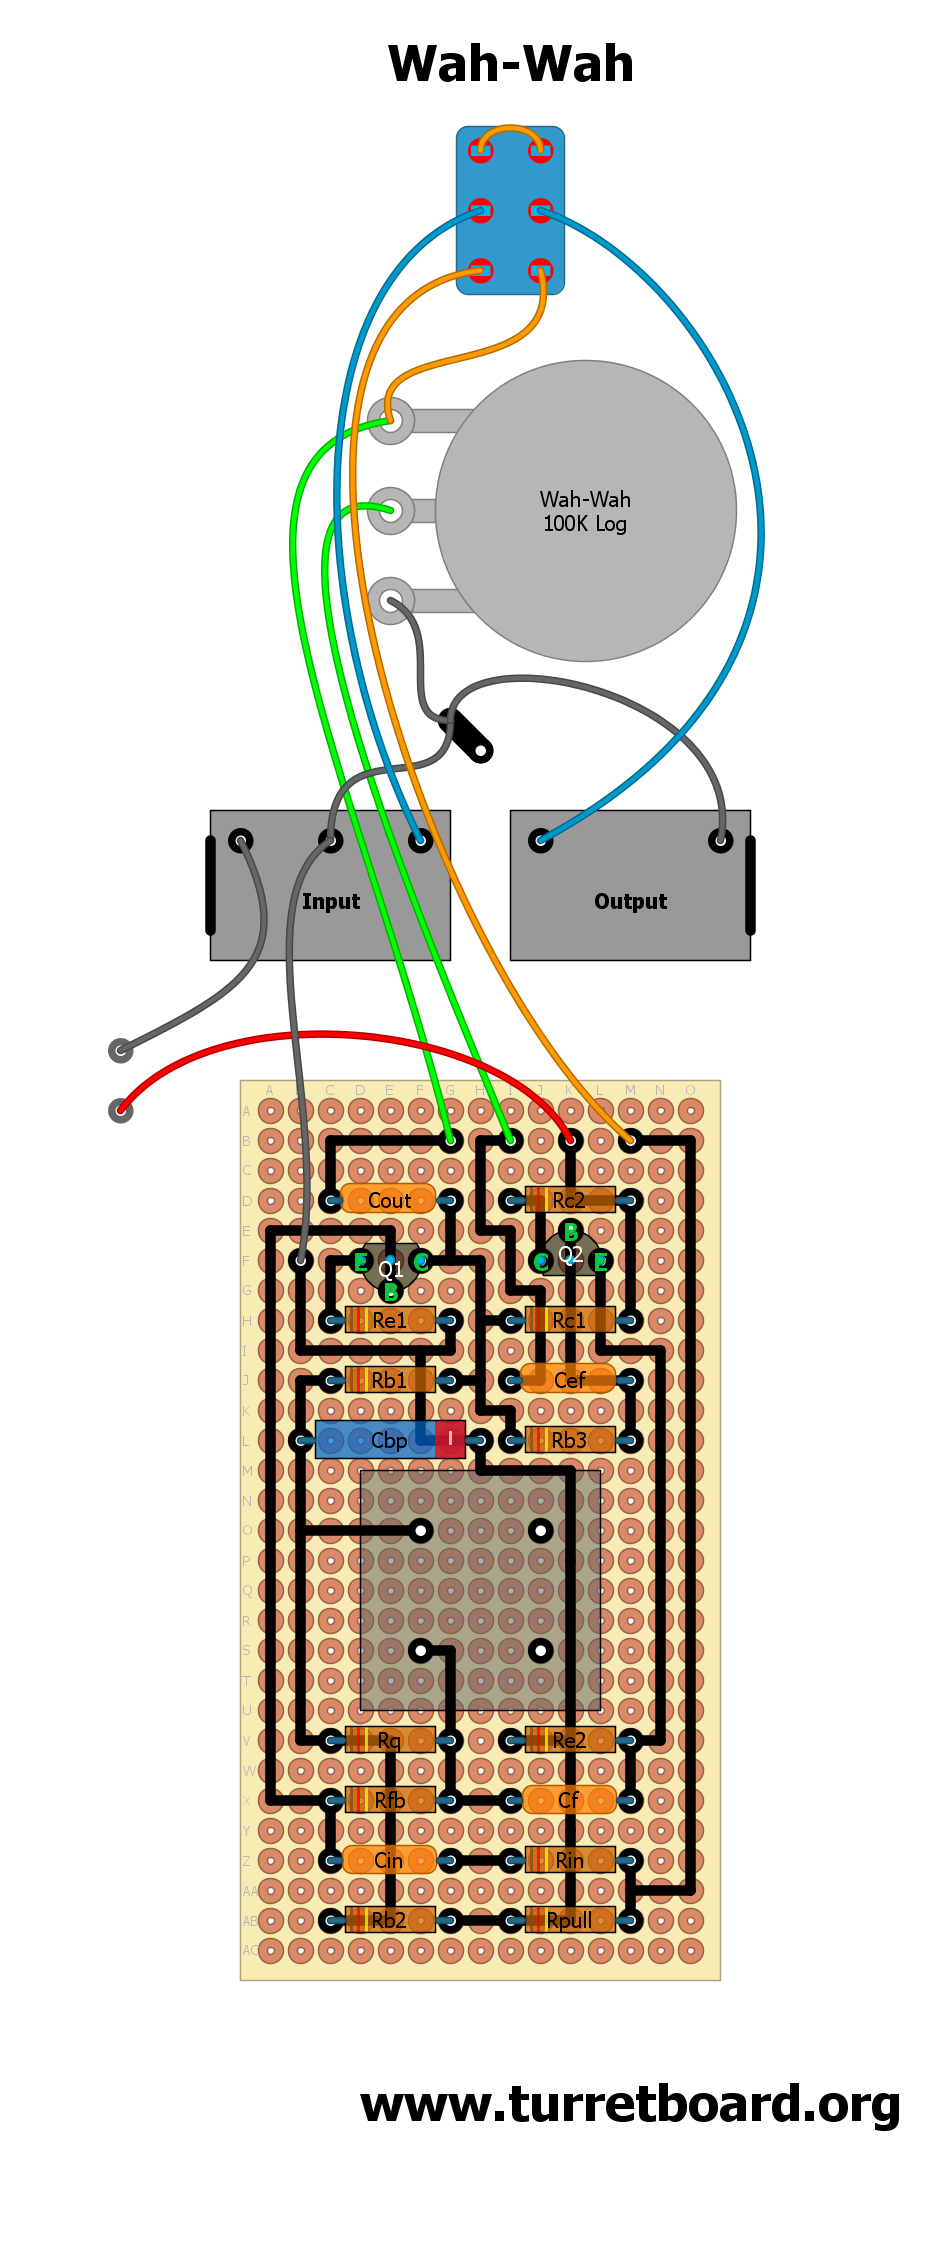 All Projects Page 4 Turretboardorg Wah Schematic In Addition Volume Pedal On Dunlop 01 Pitch Perf